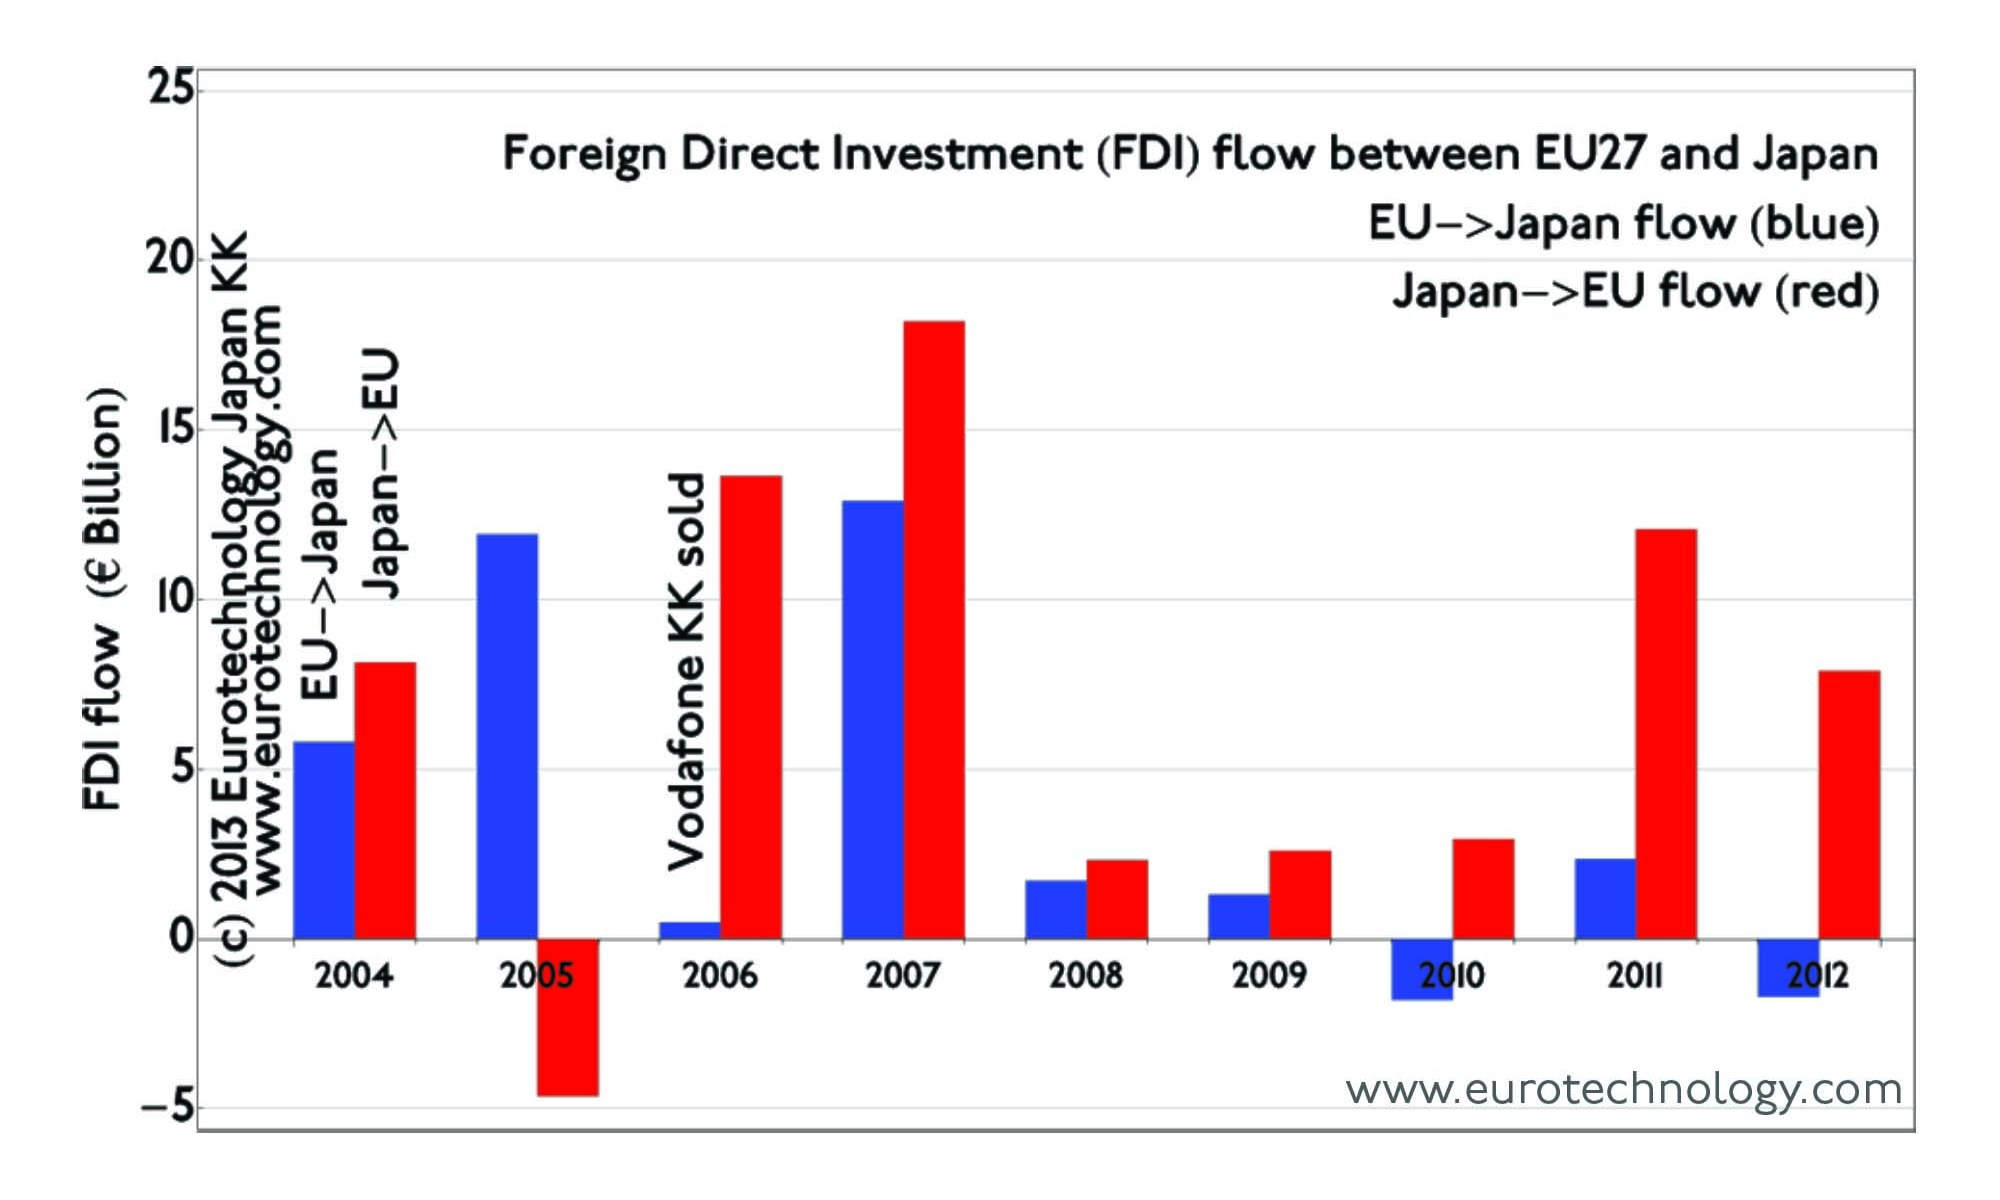 Japanese acquisition boom of European companies